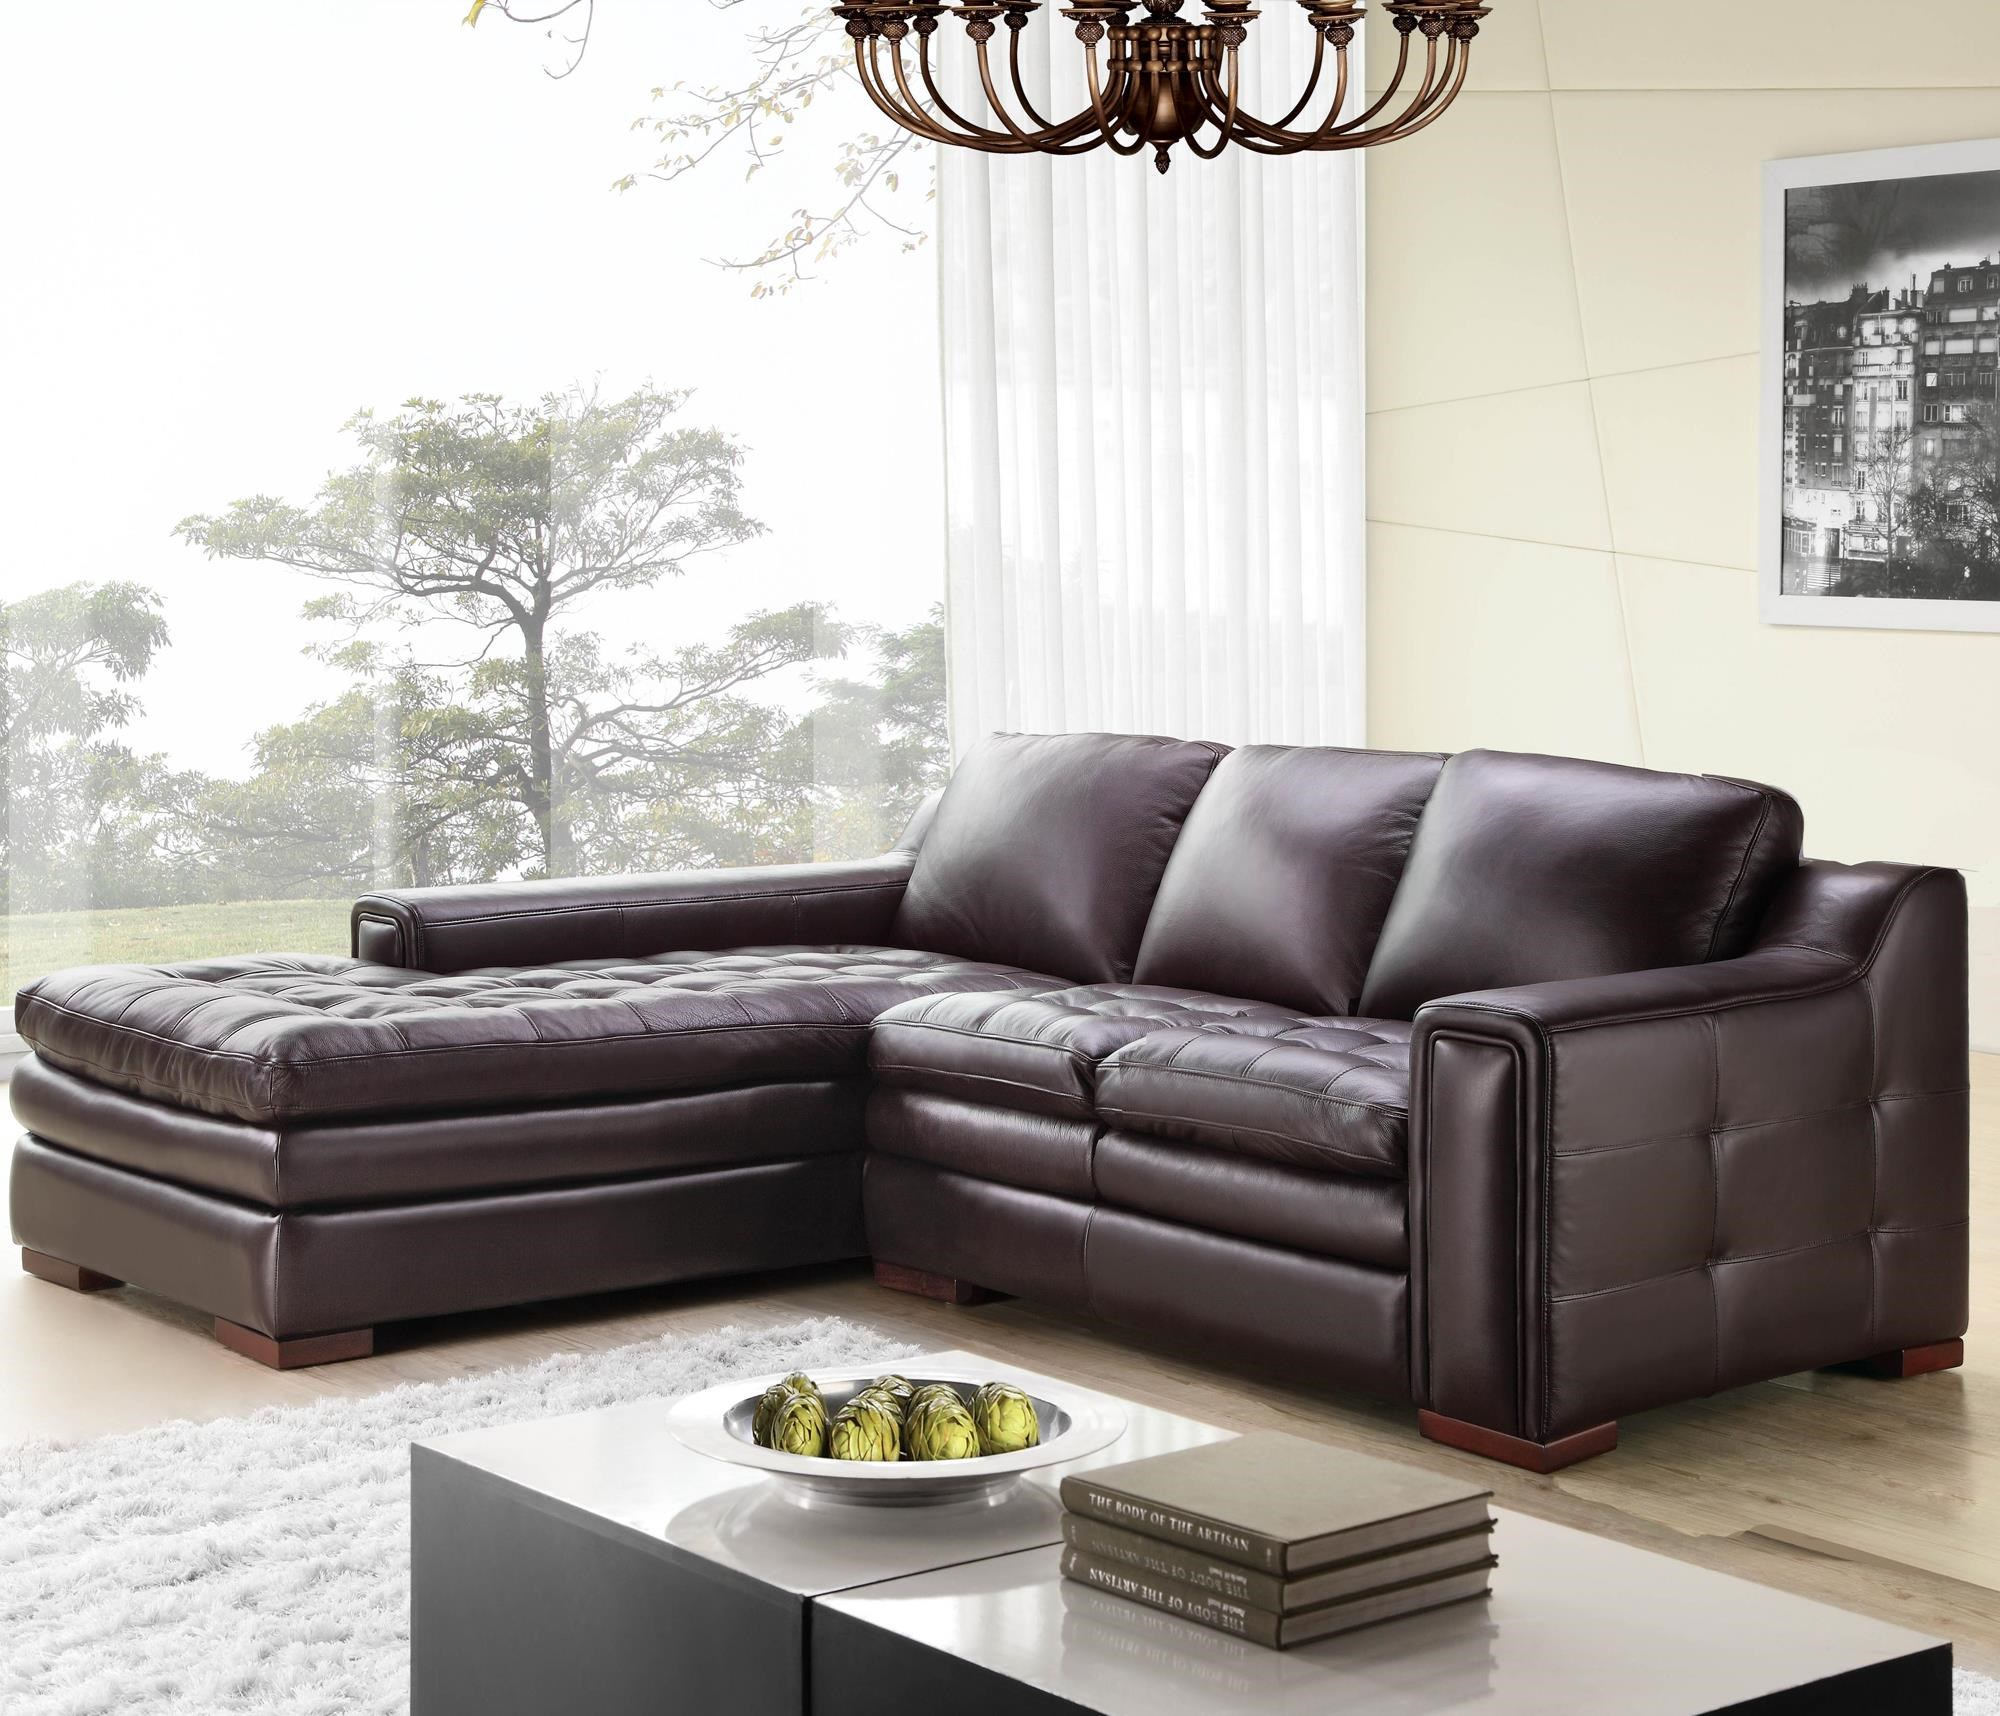 Futura Leather 7491 2 Pce Brahma Sectional